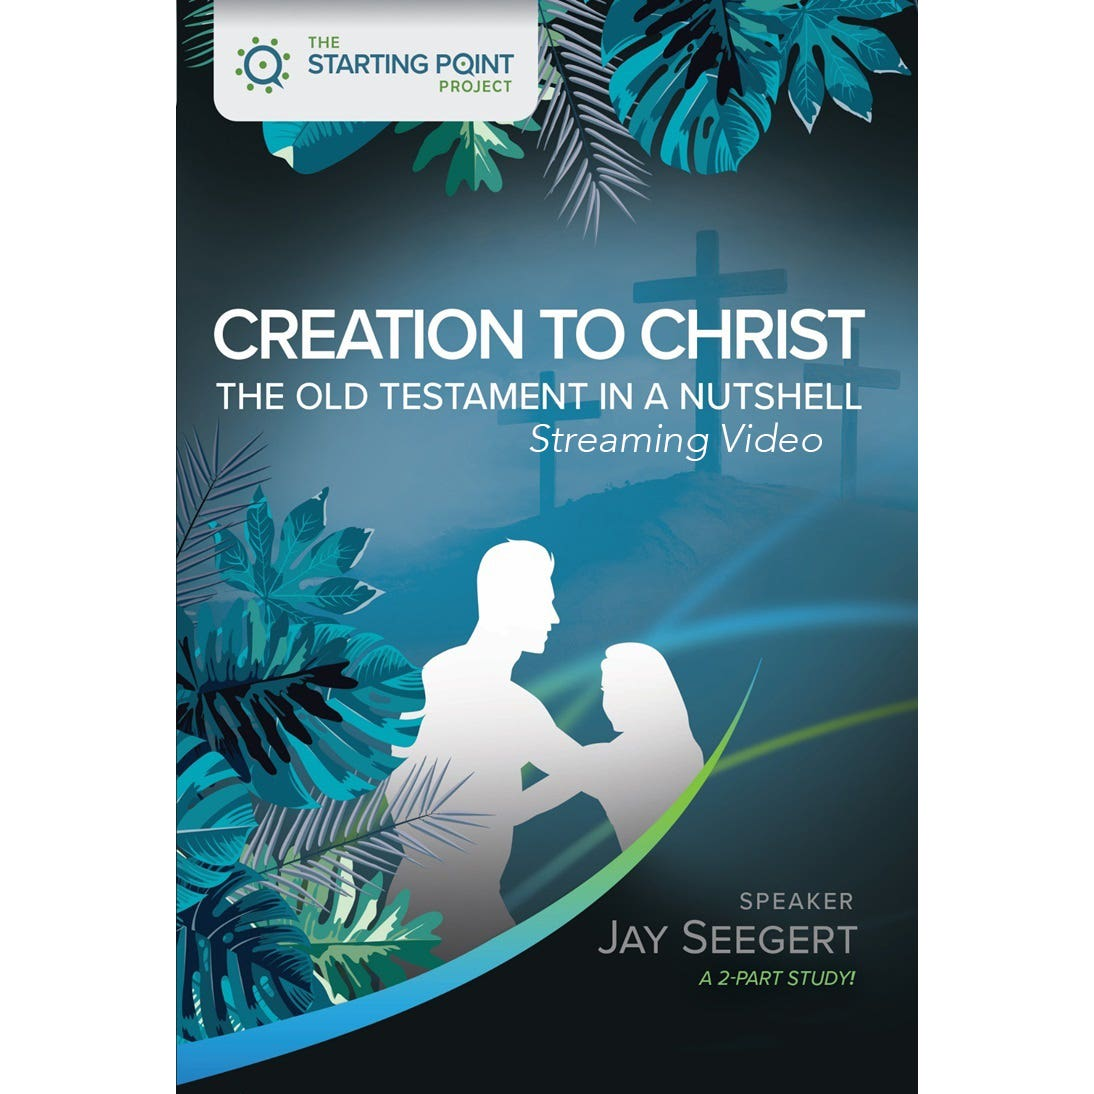 Cover for The Starting Point Project Creation to Christ: The Old Testament in a Nutshell streaming video